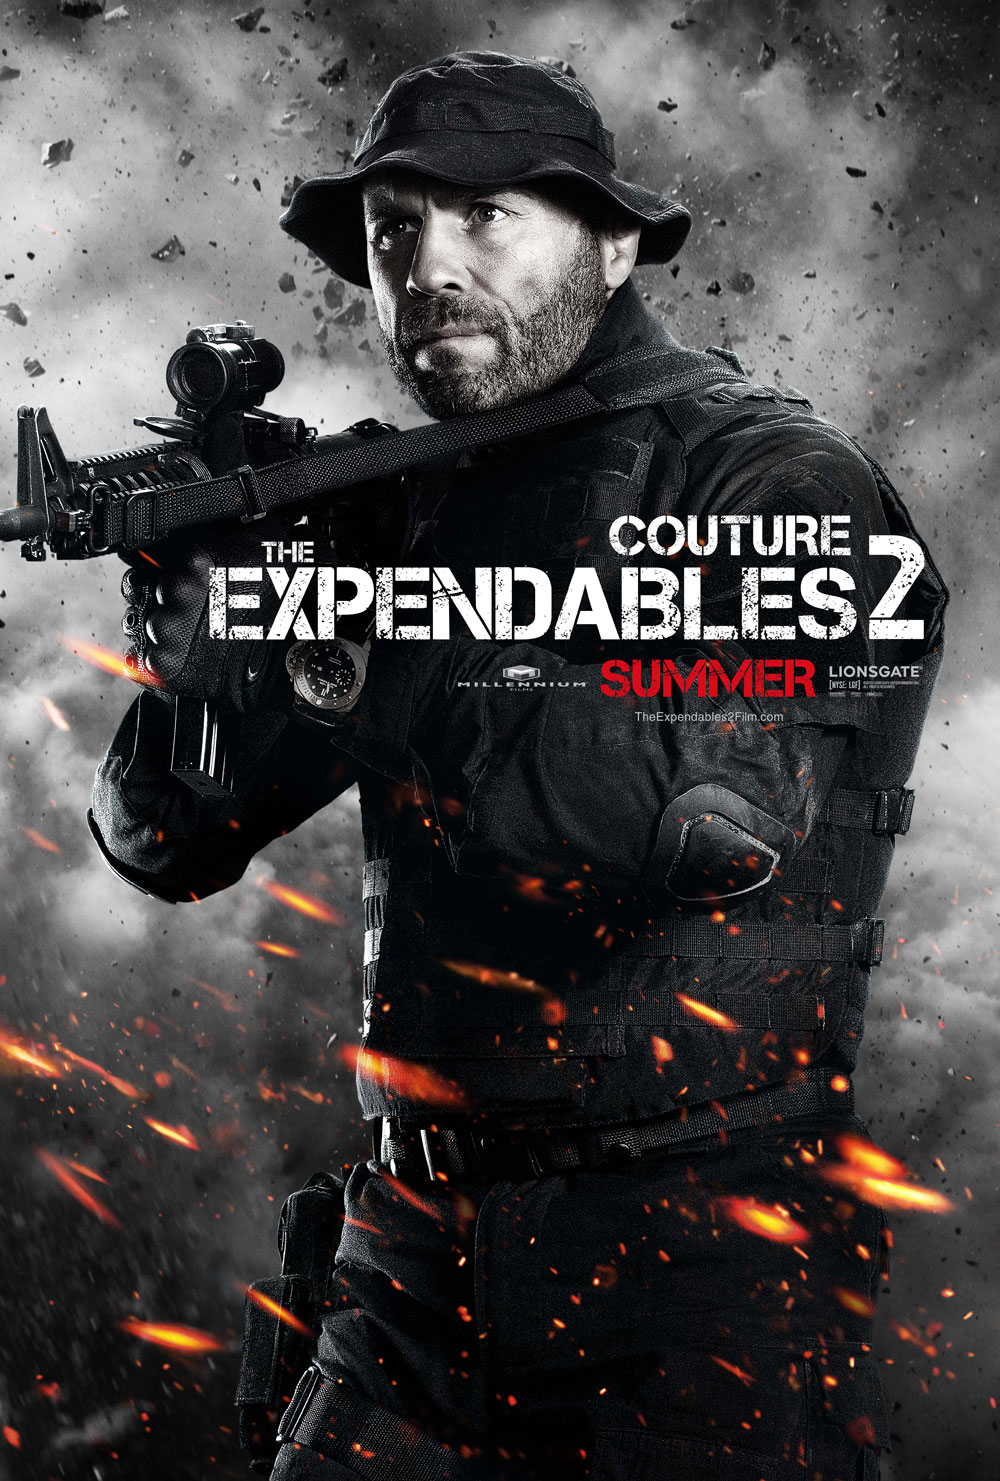 Sylvester Stallone Wallpaper Hd Forthcoming Movies The Expendables 2 Poster Collection Hd